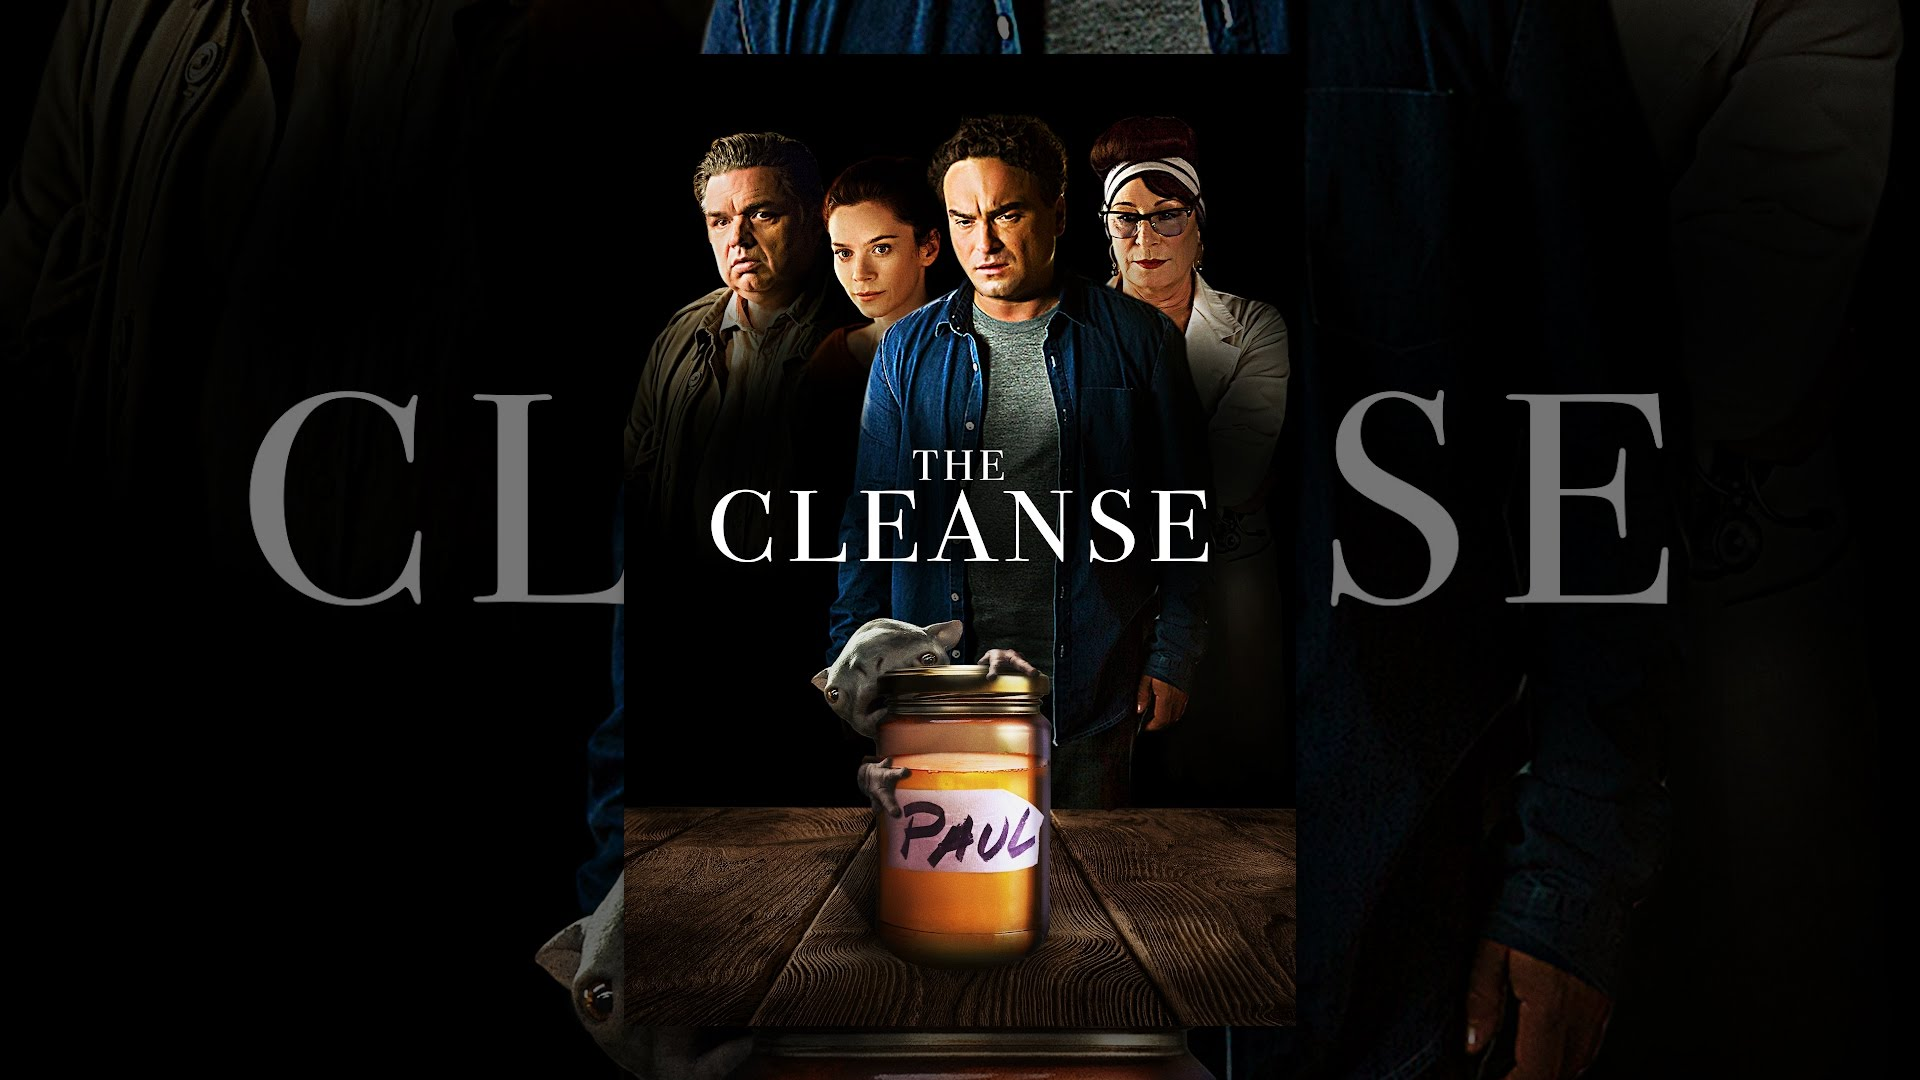 Trailer för The Cleanse